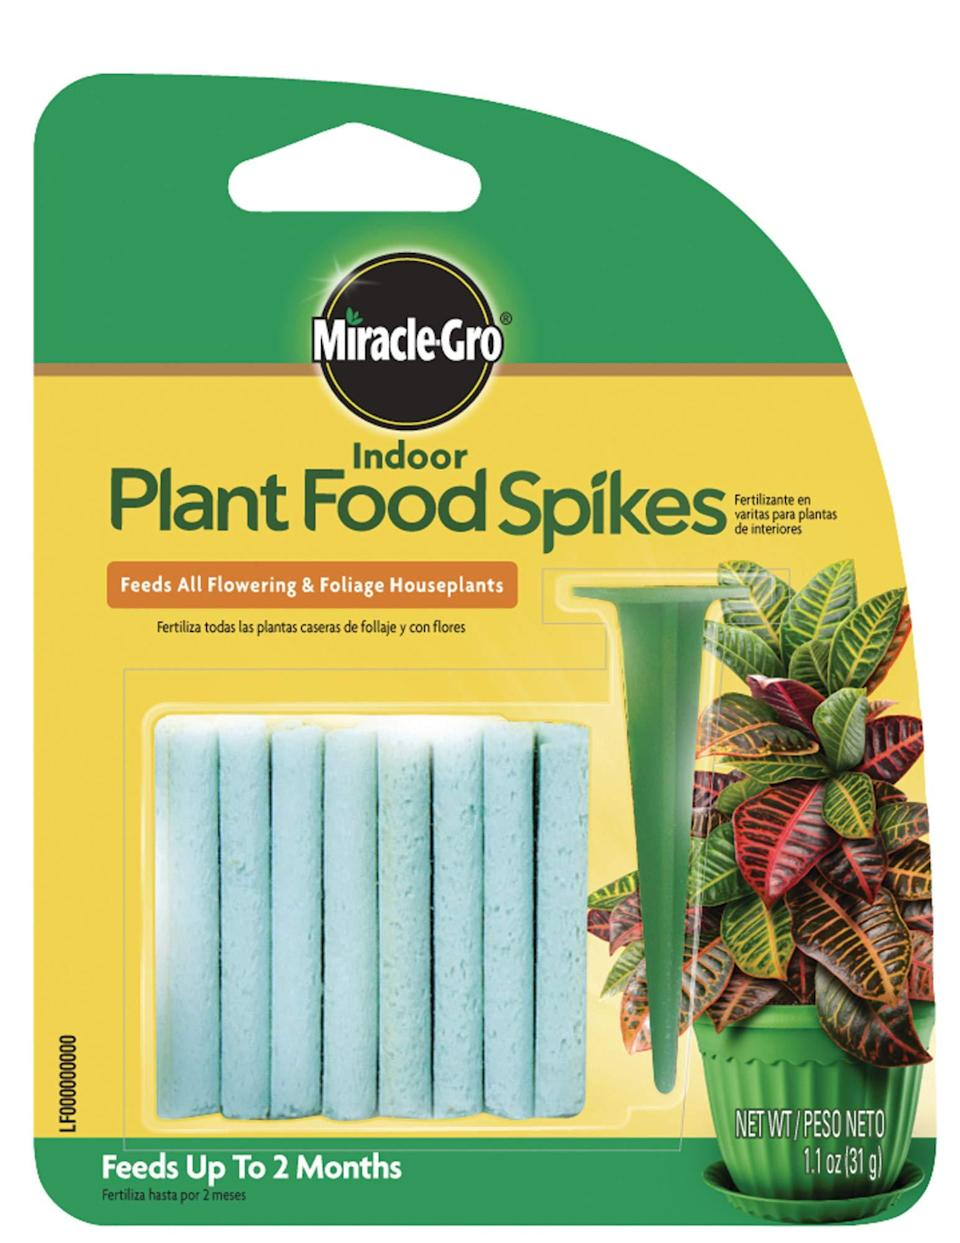 """<h2>Miracle-Gro Indoor Plant Food Spikes</h2><br>An unlikely hot-to-cart May item, these little Plant Food Spikes by Miracle-Gro rose to most wanted fame thanks to a plug from Karina Hoshikawa in our <a href=""""https://www.refinery29.com/en-us/what-to-buy-with-100-dollars"""" rel=""""nofollow noopener"""" target=""""_blank"""" data-ylk=""""slk:Shopping team's monthly MVPs"""" class=""""link rapid-noclick-resp"""">Shopping team's monthly MVPs</a>. """"Naturally, when my snake plant started to look a little withered (I know — I deserve a medal), it was time to consult my plant-whisperer mom. Without skipping a beat, she recommended these Miracle-Gro plant food sticks; according to her testimonial, they successfully revived one of her leafy babies within an inch of death. Sure enough, within a few weeks of popping two little spikes into freshly watered soil, and I'm already seeing healthier happier growth. For $3, consider this insurance for your plant collection,"""" she attested.<br><br><em>Shop <strong><a href=""""https://amzn.to/3pcMbPU"""" rel=""""nofollow noopener"""" target=""""_blank"""" data-ylk=""""slk:Amazon"""" class=""""link rapid-noclick-resp"""">Amazon</a></strong></em><br><br><strong>Miracle-Gro</strong> Indoor Plant Food Spikes, $, available at <a href=""""https://amzn.to/33Rpk2y"""" rel=""""nofollow noopener"""" target=""""_blank"""" data-ylk=""""slk:Amazon"""" class=""""link rapid-noclick-resp"""">Amazon</a>"""